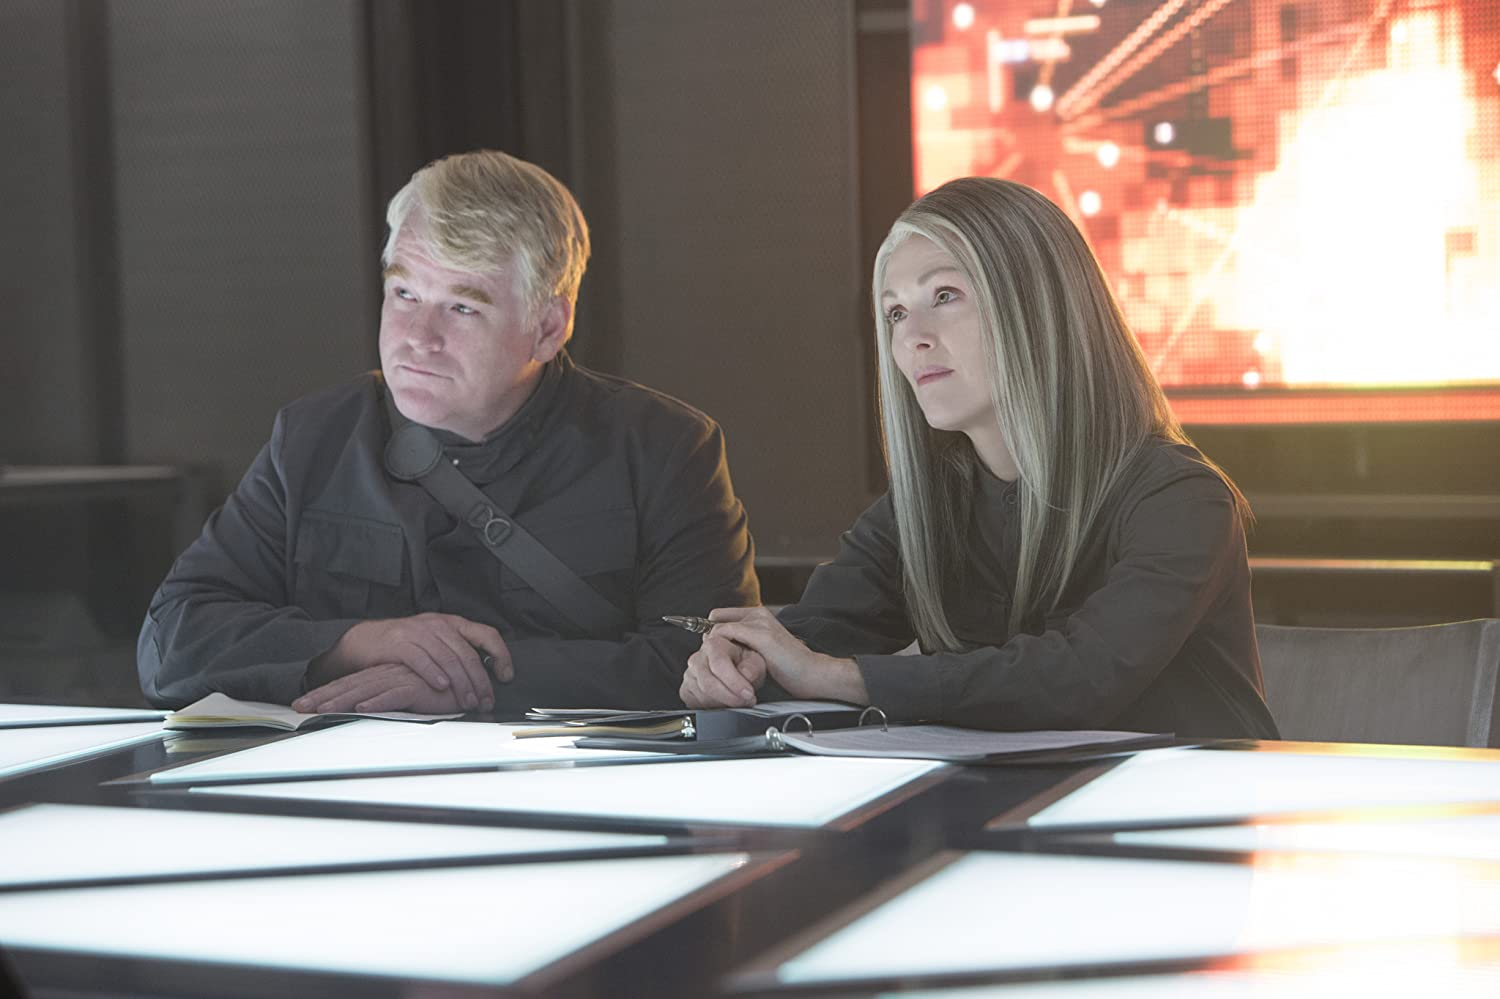 Julianne Moore and Philip Seymour Hoffman in The Hunger Games: Mockingjay - Part 1 (2014)